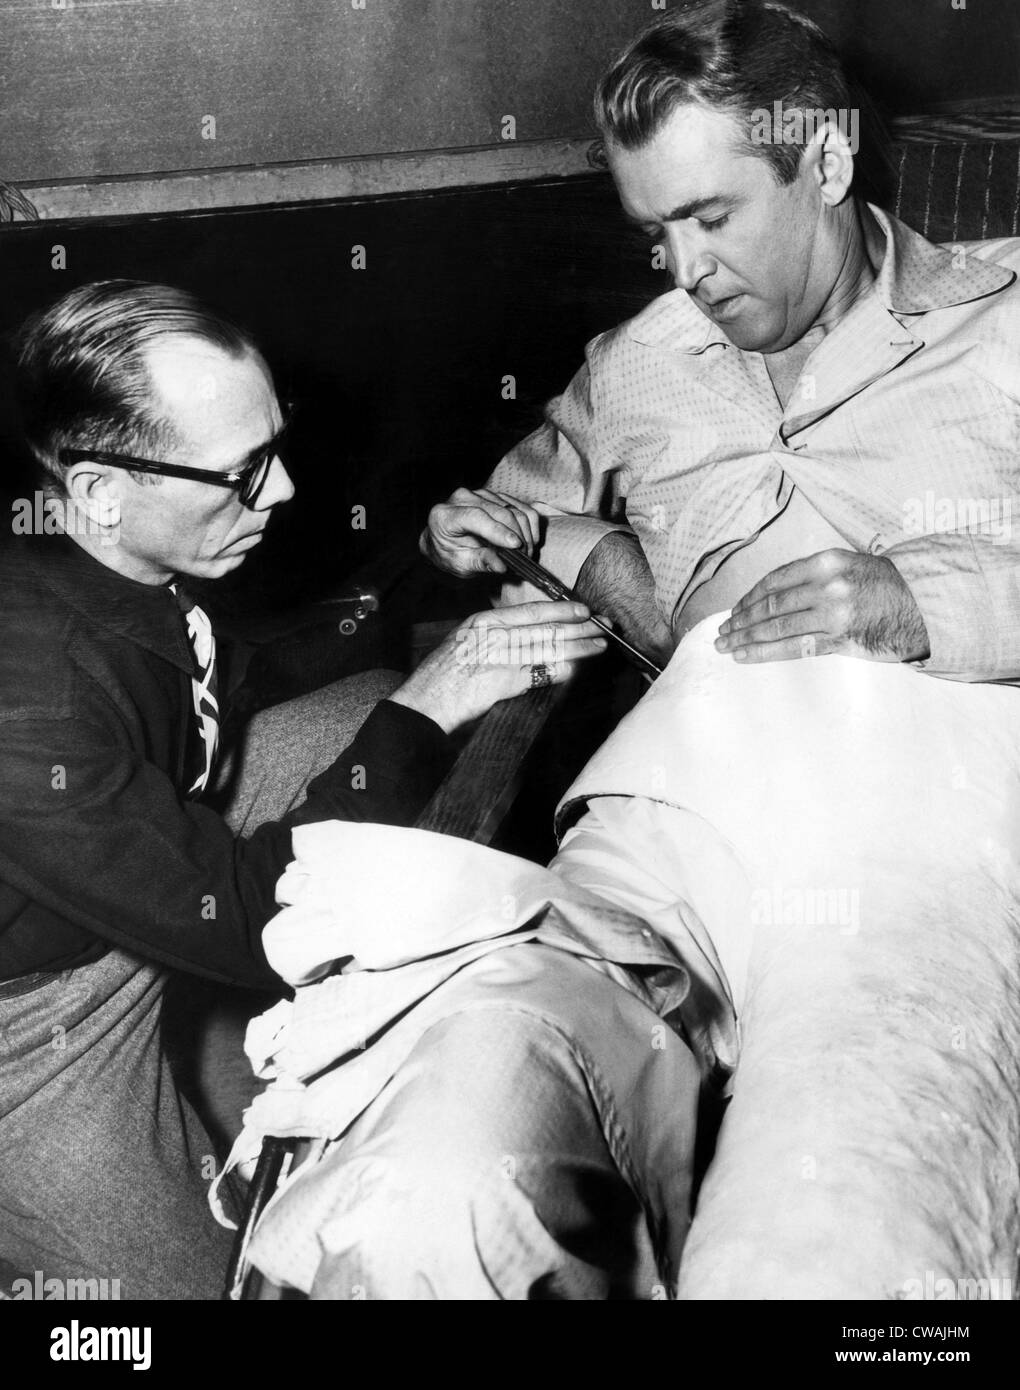 Prop man Bill Sapp screws James Stewart into a plaster cast on the set of Alfred Hitchcock's 'REAR WINDOW', - Stock Image